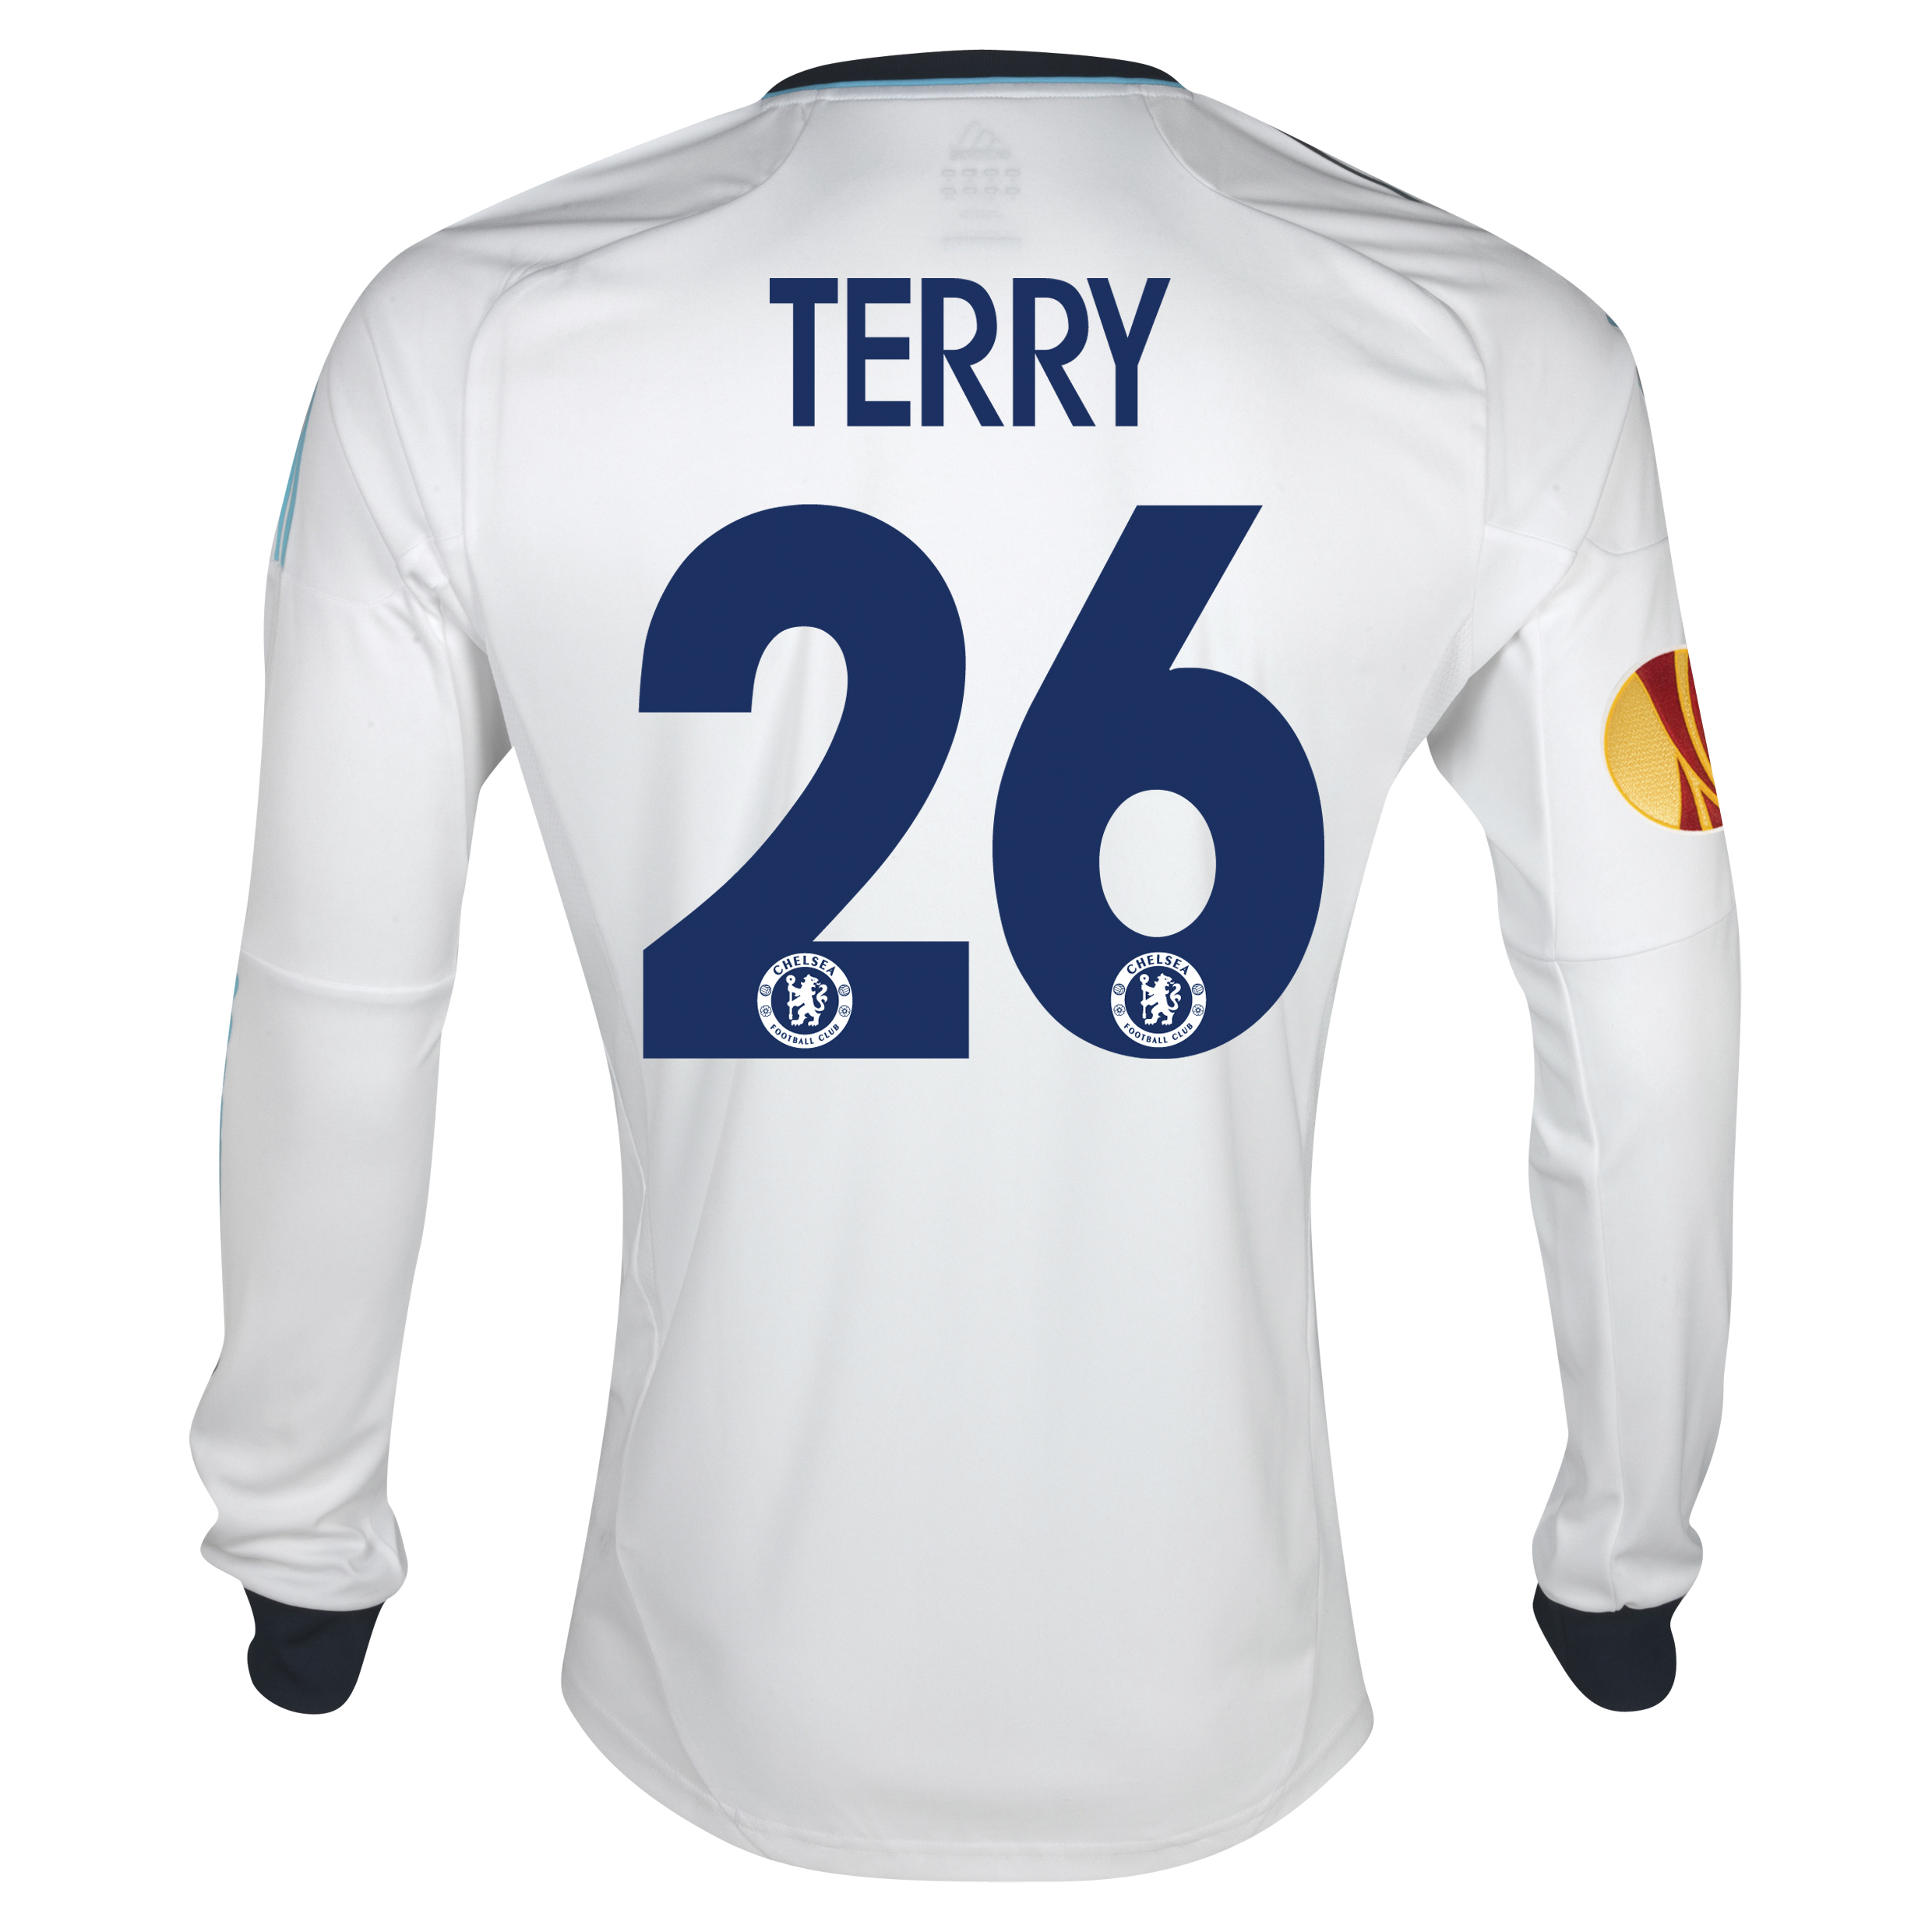 Chelsea UEFA Europa League Away Shirt 2012/13 - Long Sleeved with Terry 26 printing Including Europa Badge